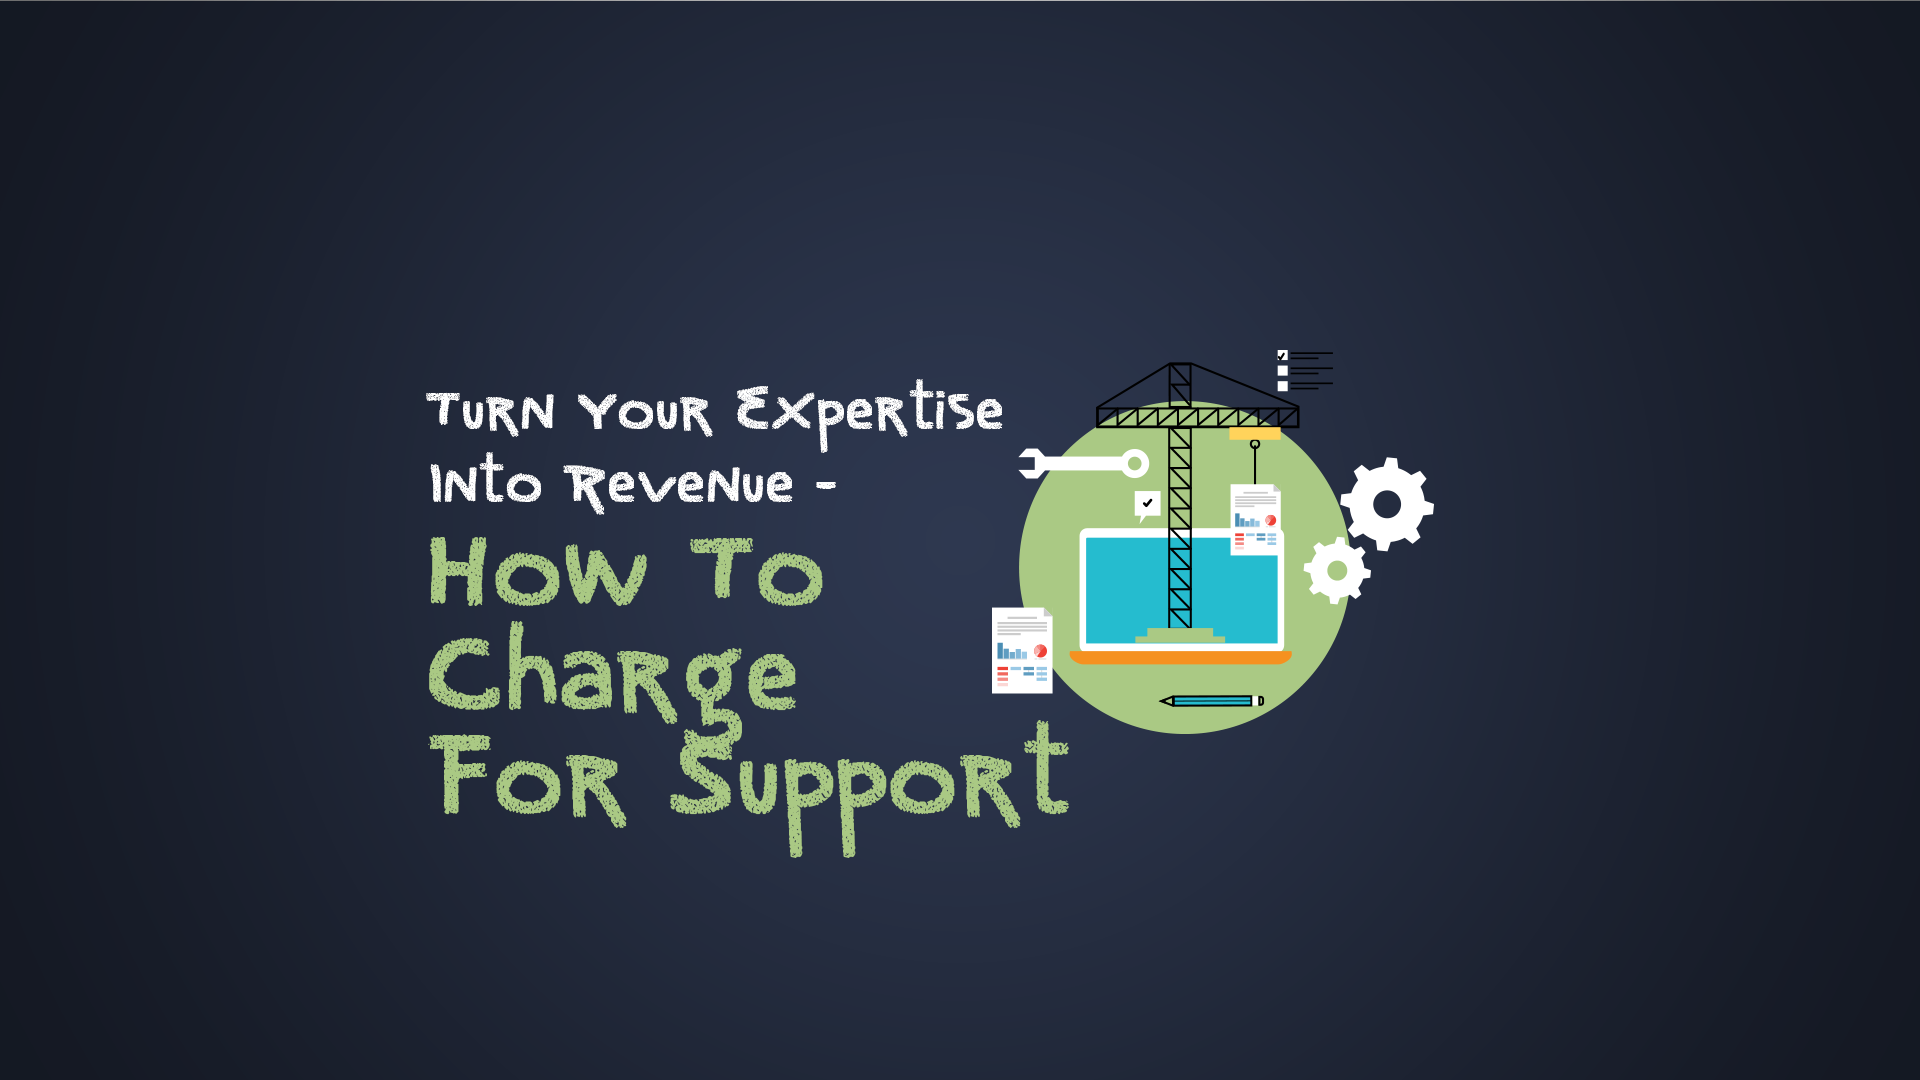 Turn Your Expertise into Revenue – How To Charge For Support